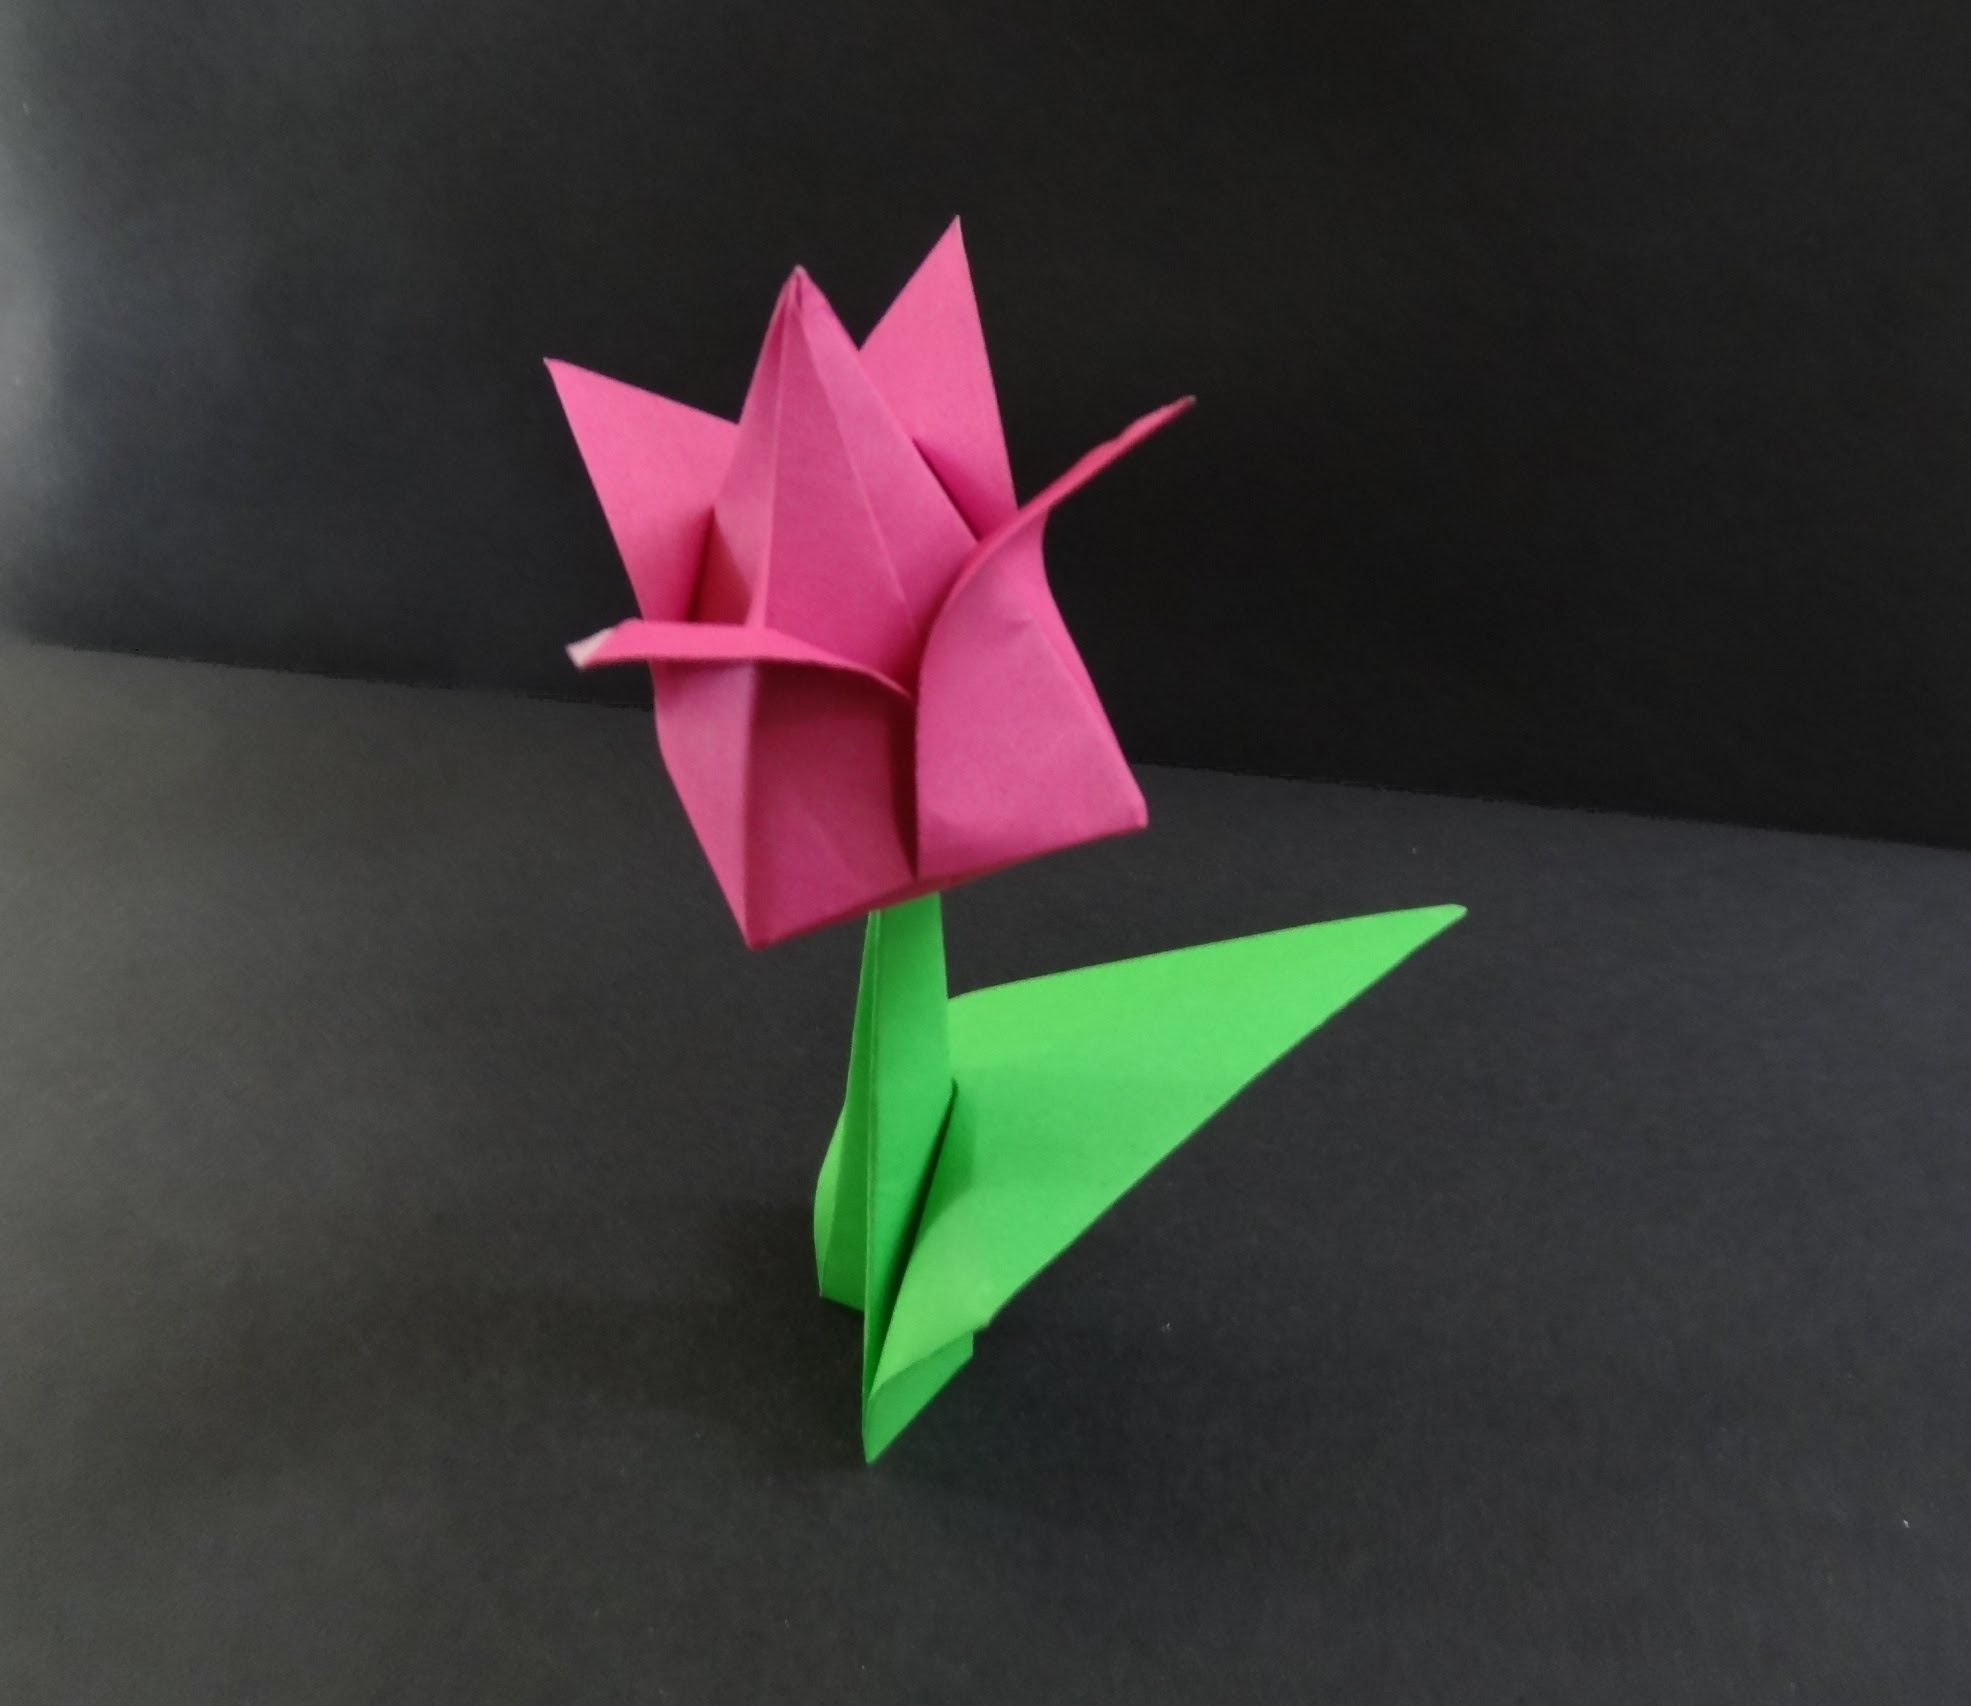 Origami flower tutorial how to fold a tulip flower videok origami flower tutorial how to fold a tulip flower jeuxipadfo Image collections